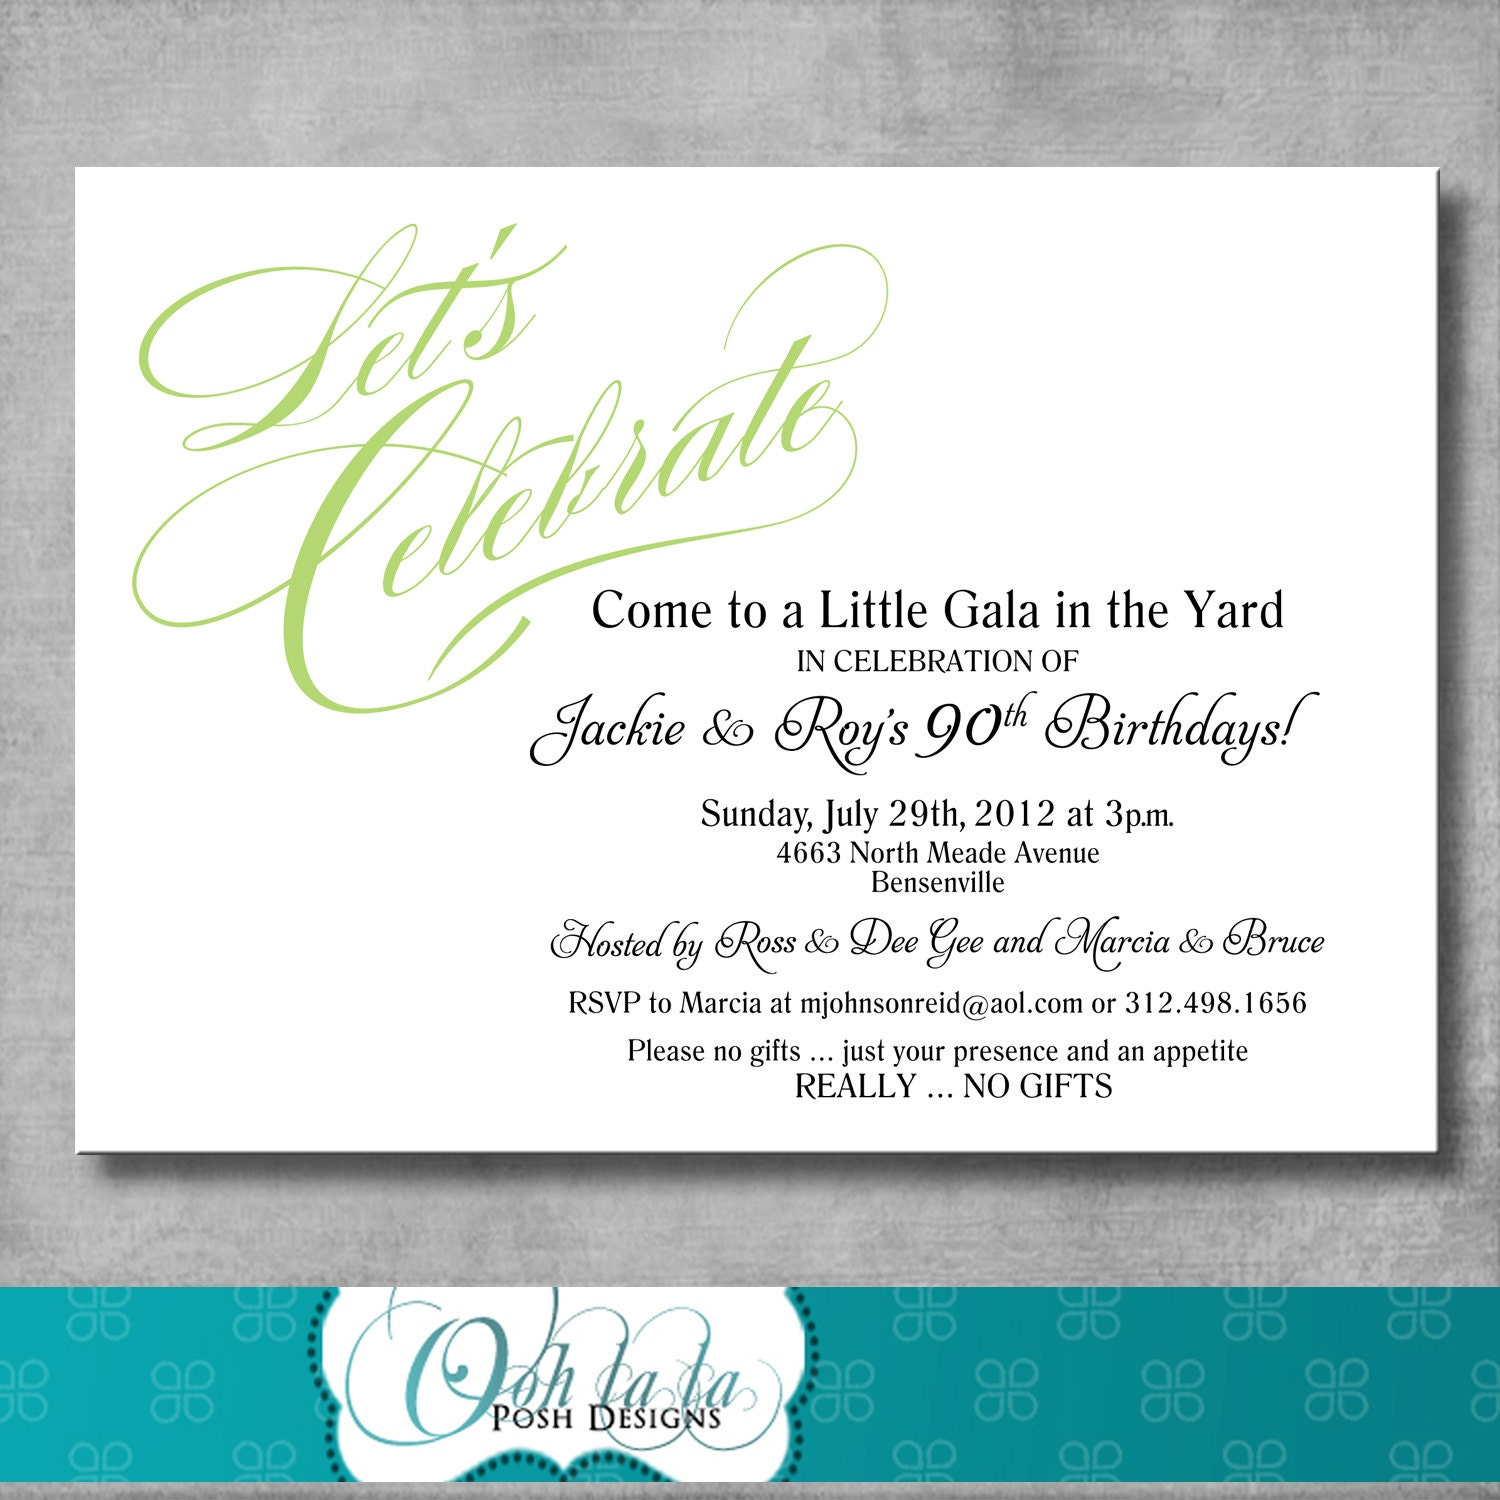 Surprise Party Invitation Wording Samples with perfect invitation example